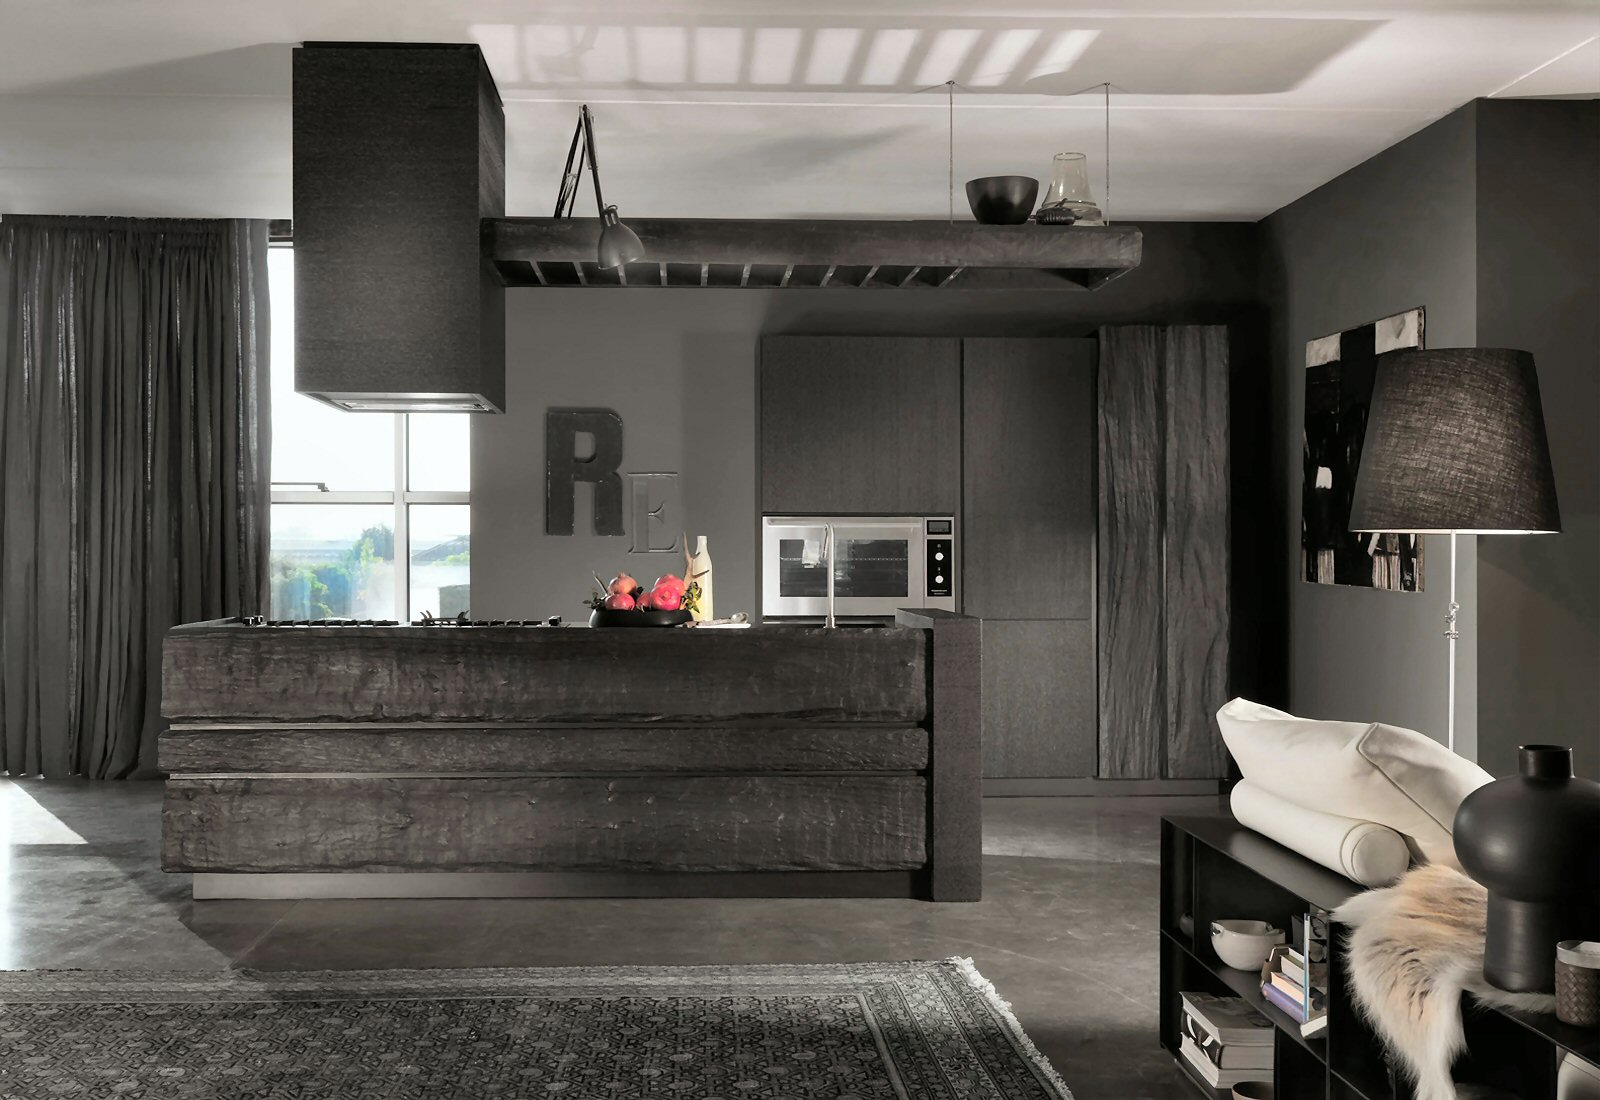 Classic Kitchens, Acquacotta by Marchetti 100% wood 100% design